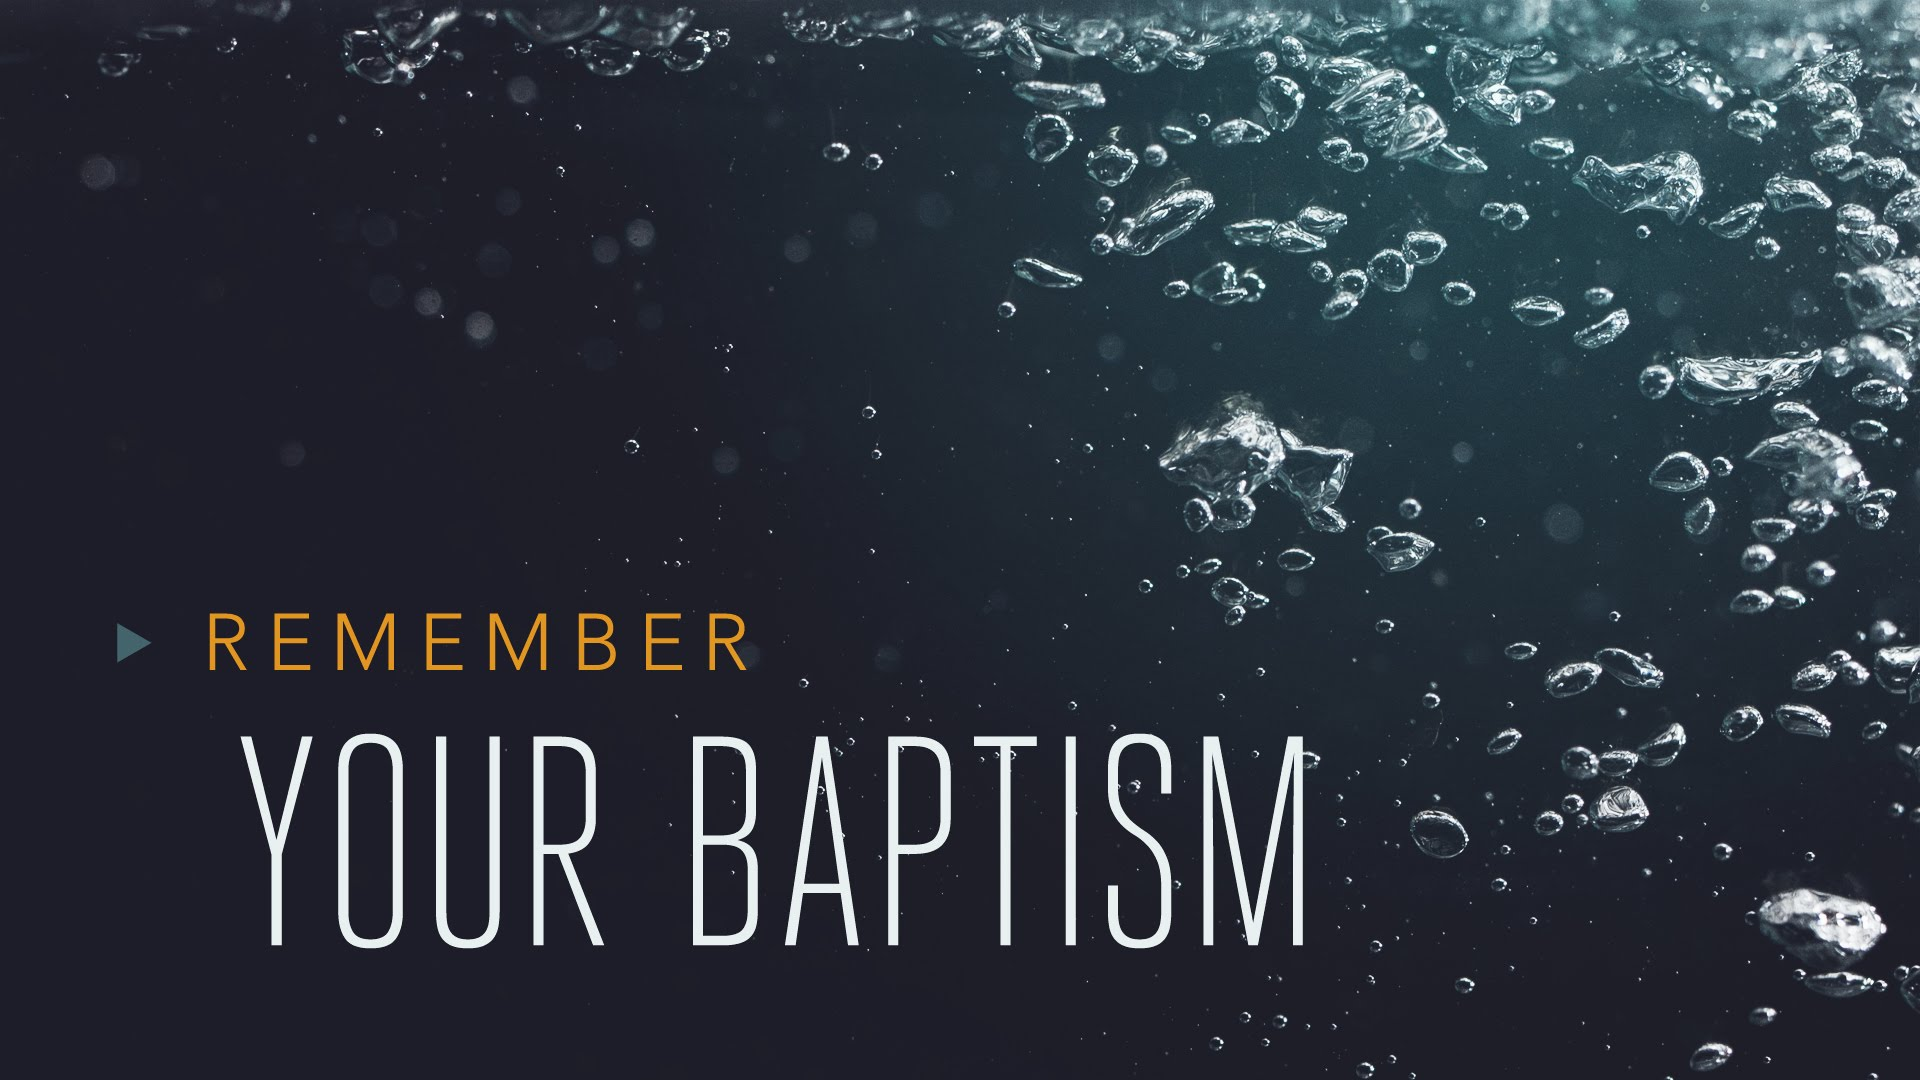 Remembering your Baptism